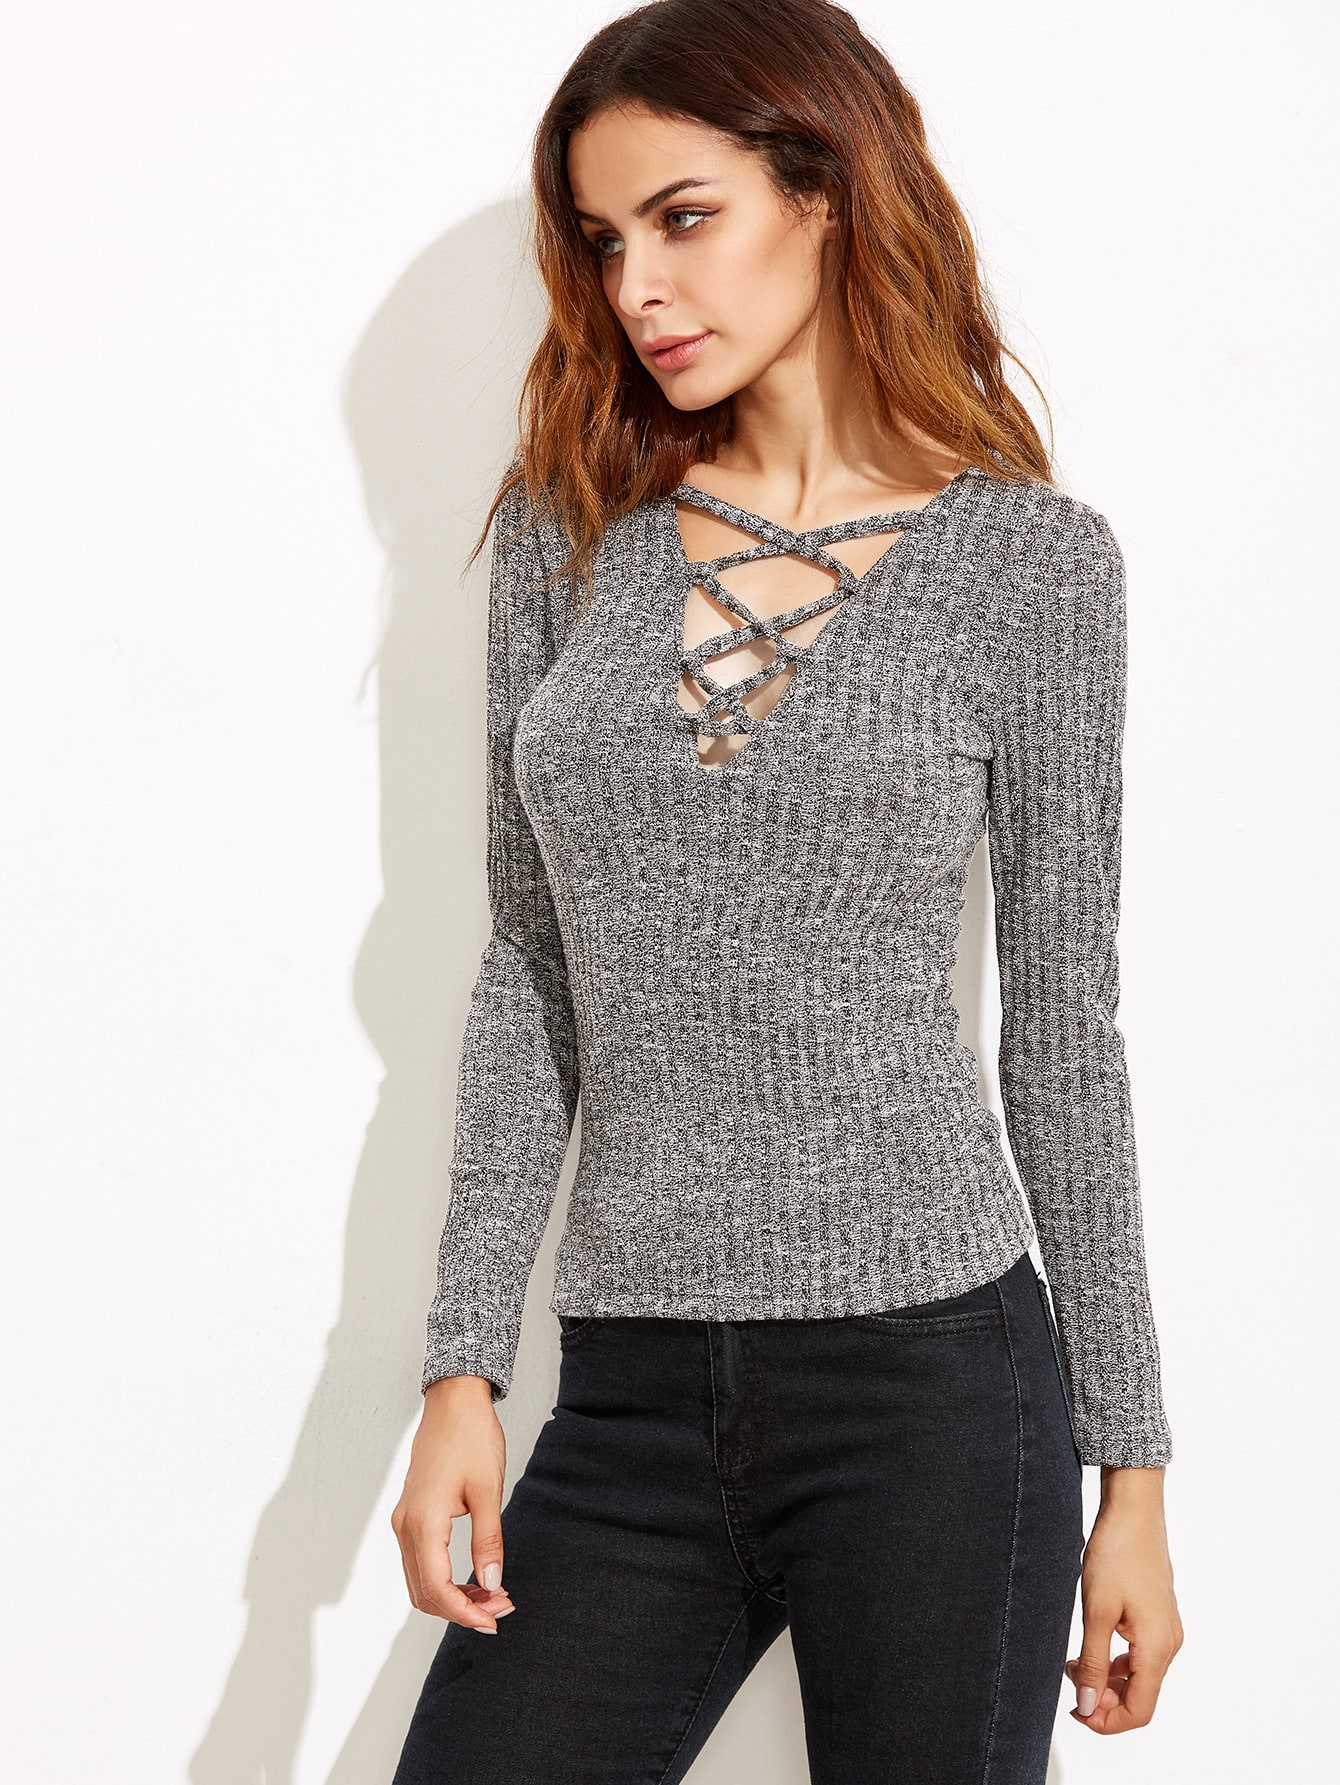 Plunge Crisscross Marled Knit Ribbed T-shirt marled knit button front staggered hem t shirt